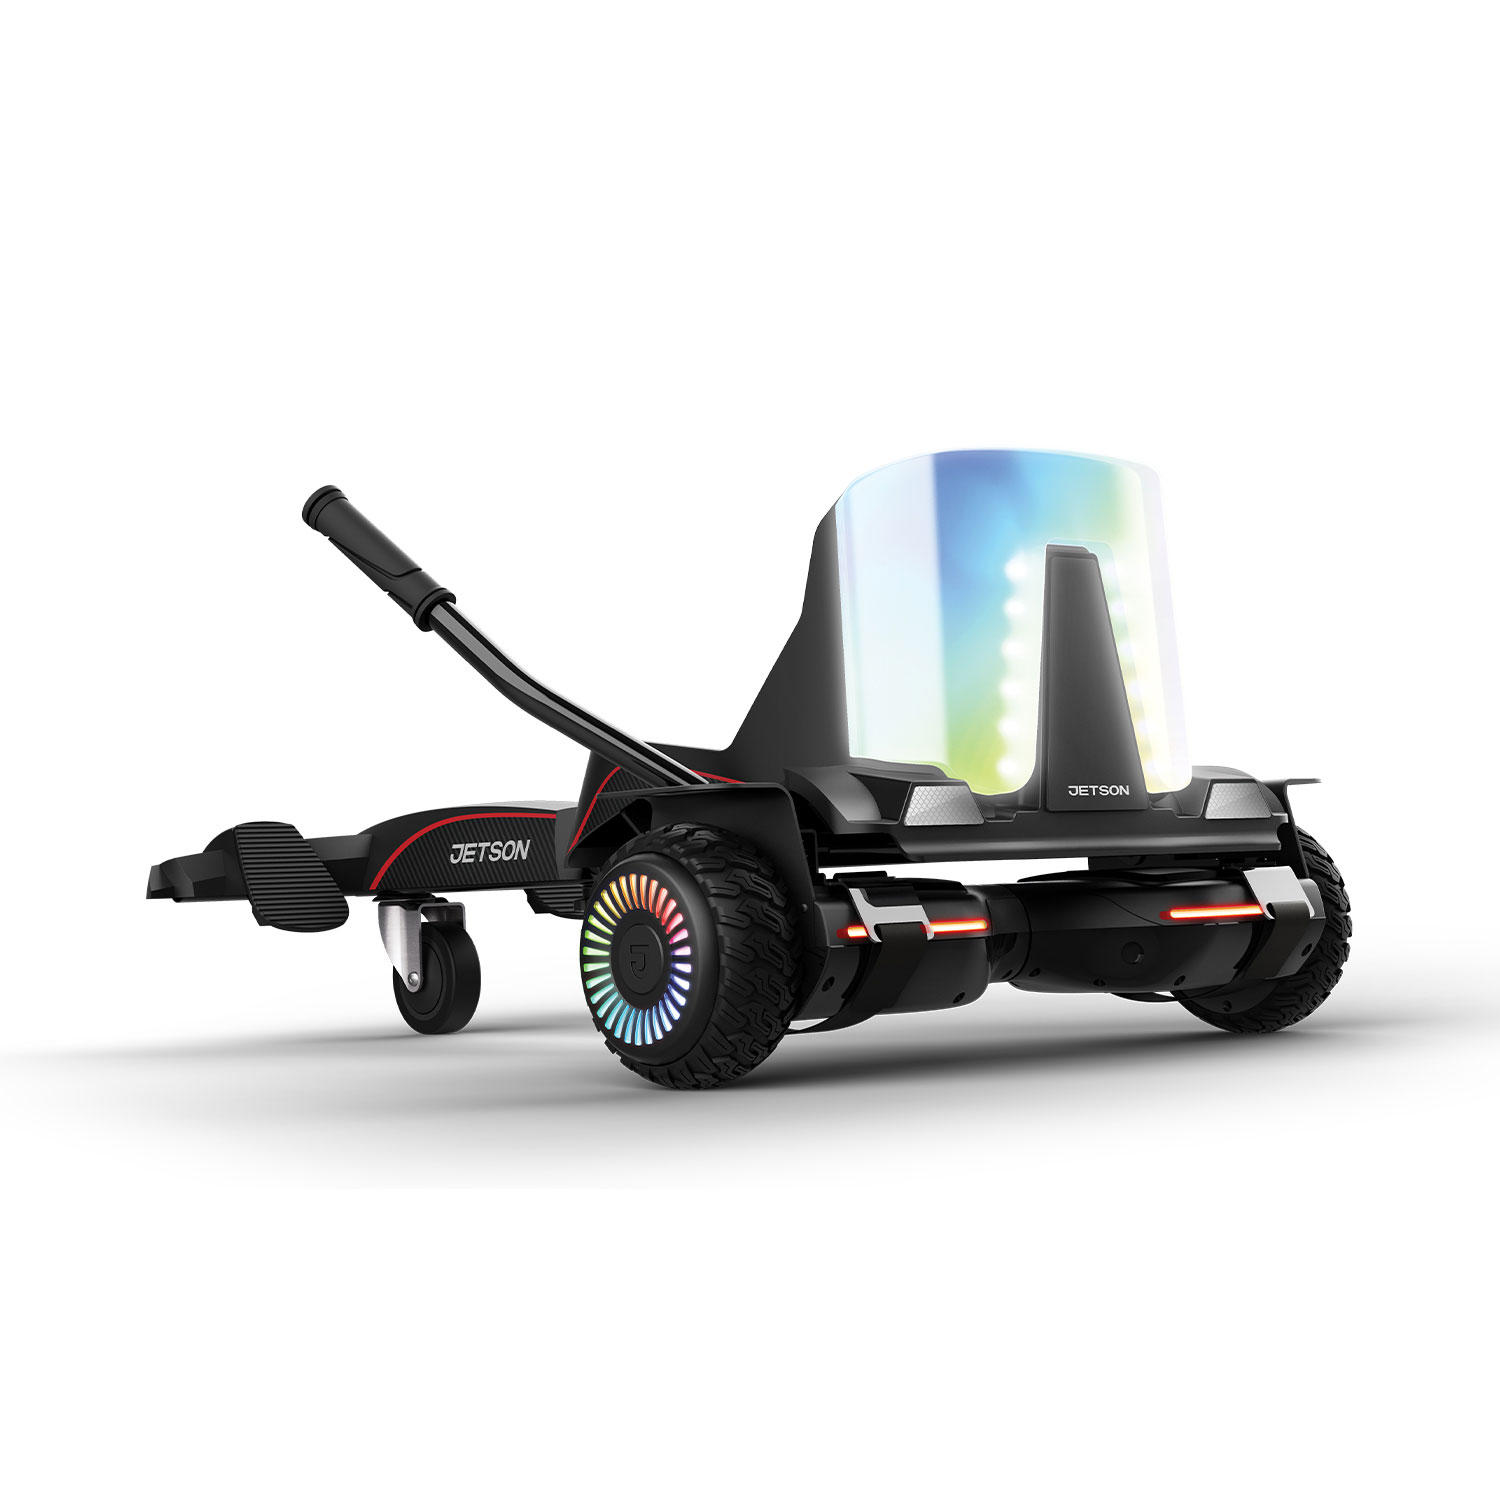 Jetson Force Light-Up Extreme Terrain Hoverboard & Go Kart Combo